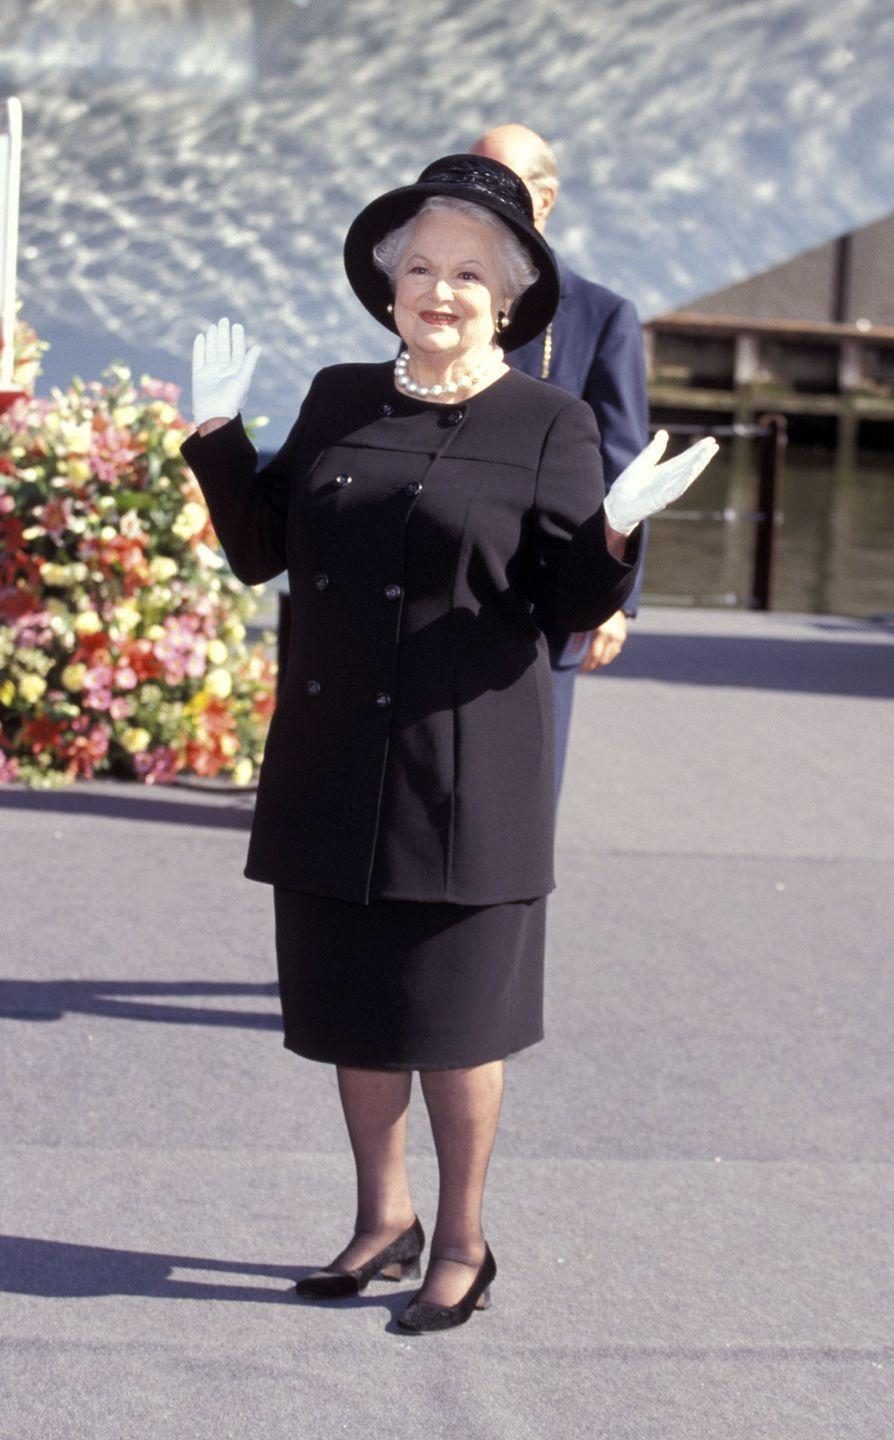 <p>Olivia at the christening of the New Grand Princess Cruise Ship in New York City in 1998.</p>